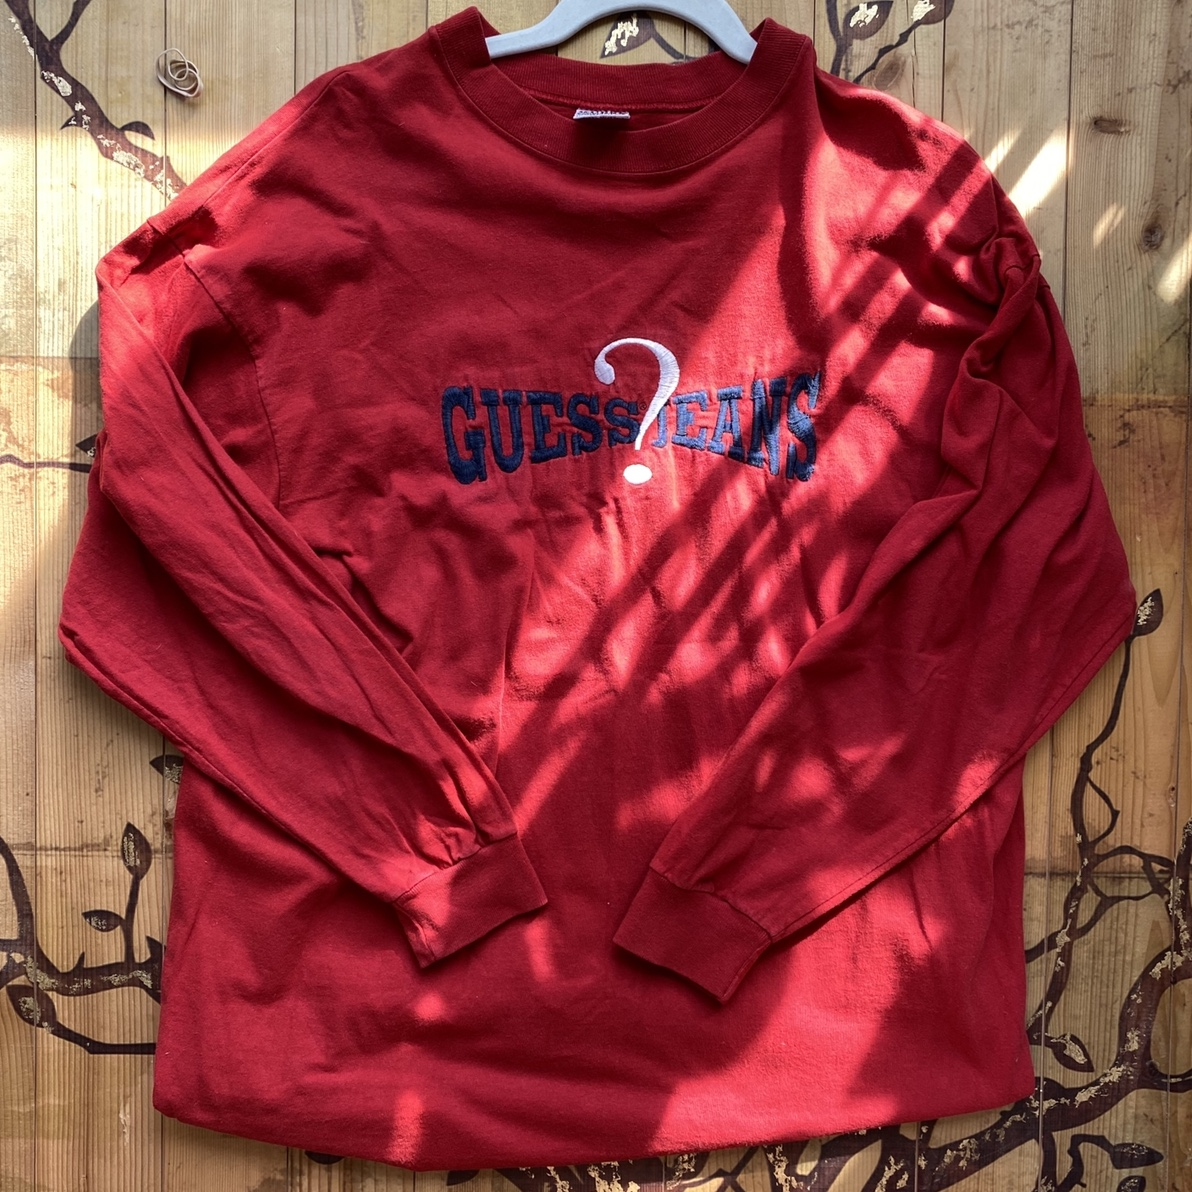 Product Image 1 - Vintage guess tee Fits like large